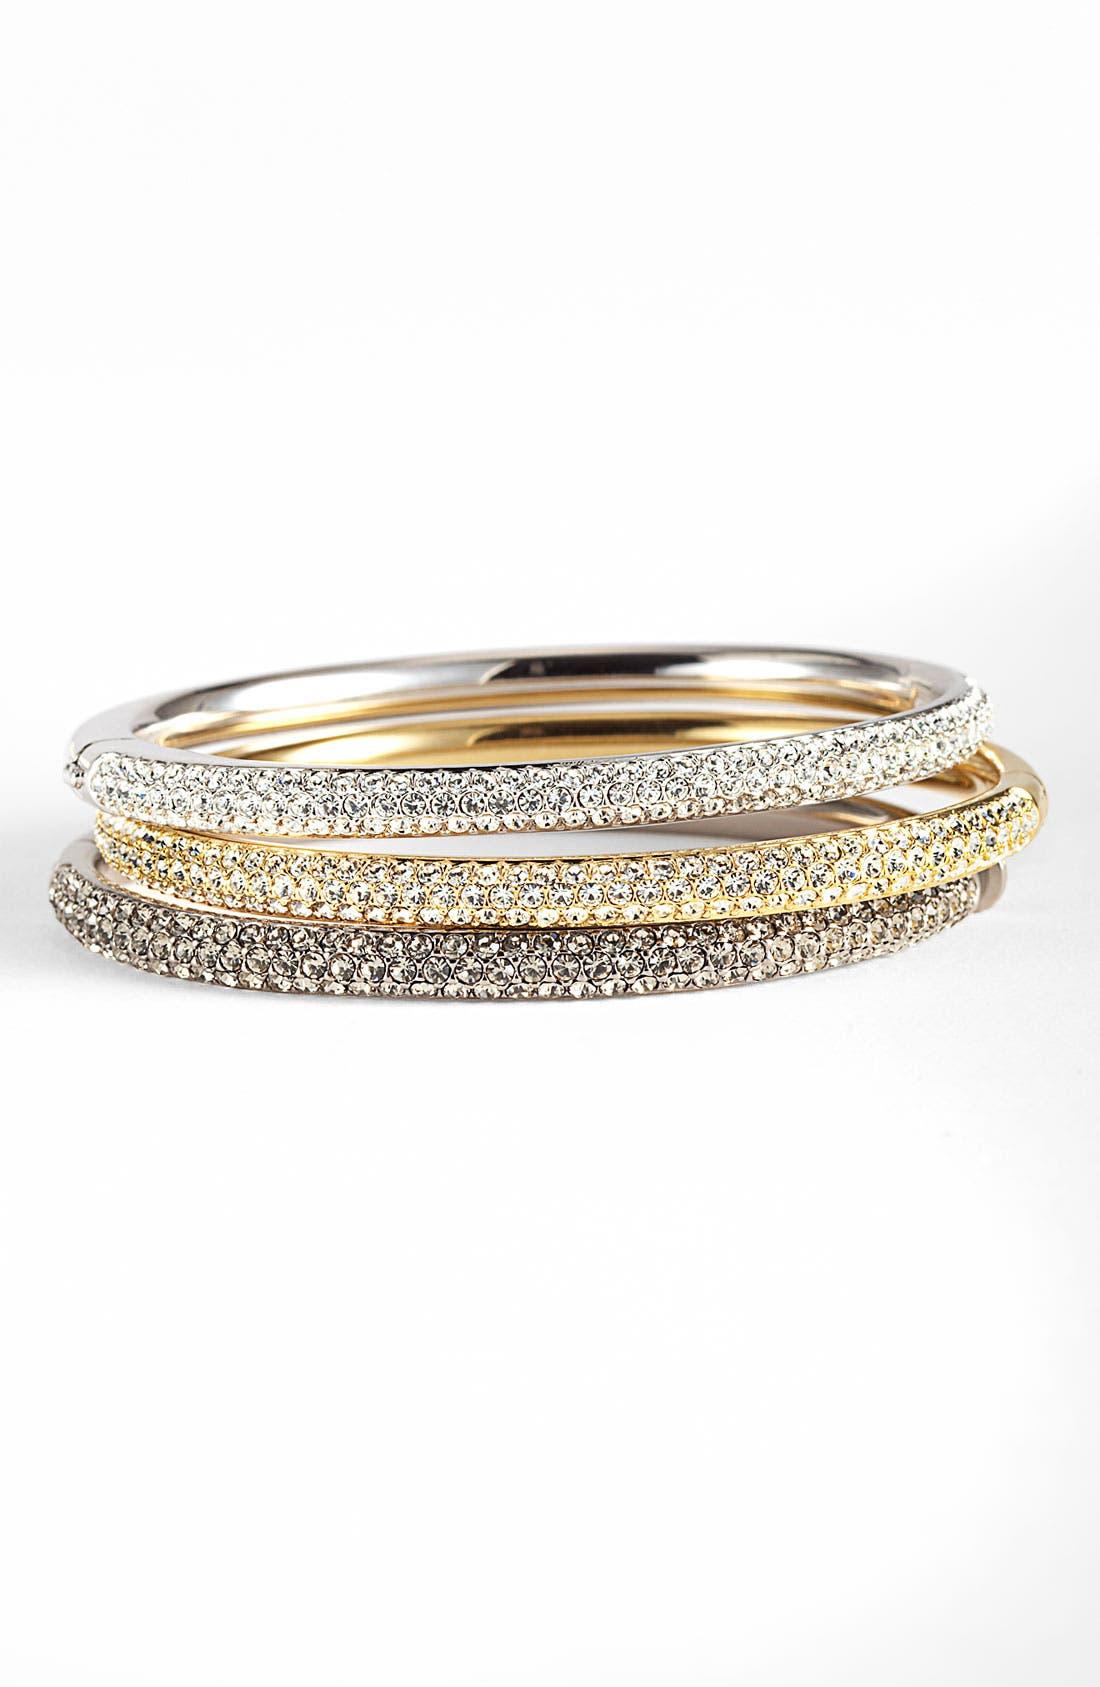 Main Image - Nadri 'Pavé Bombe' Hinged Bangle